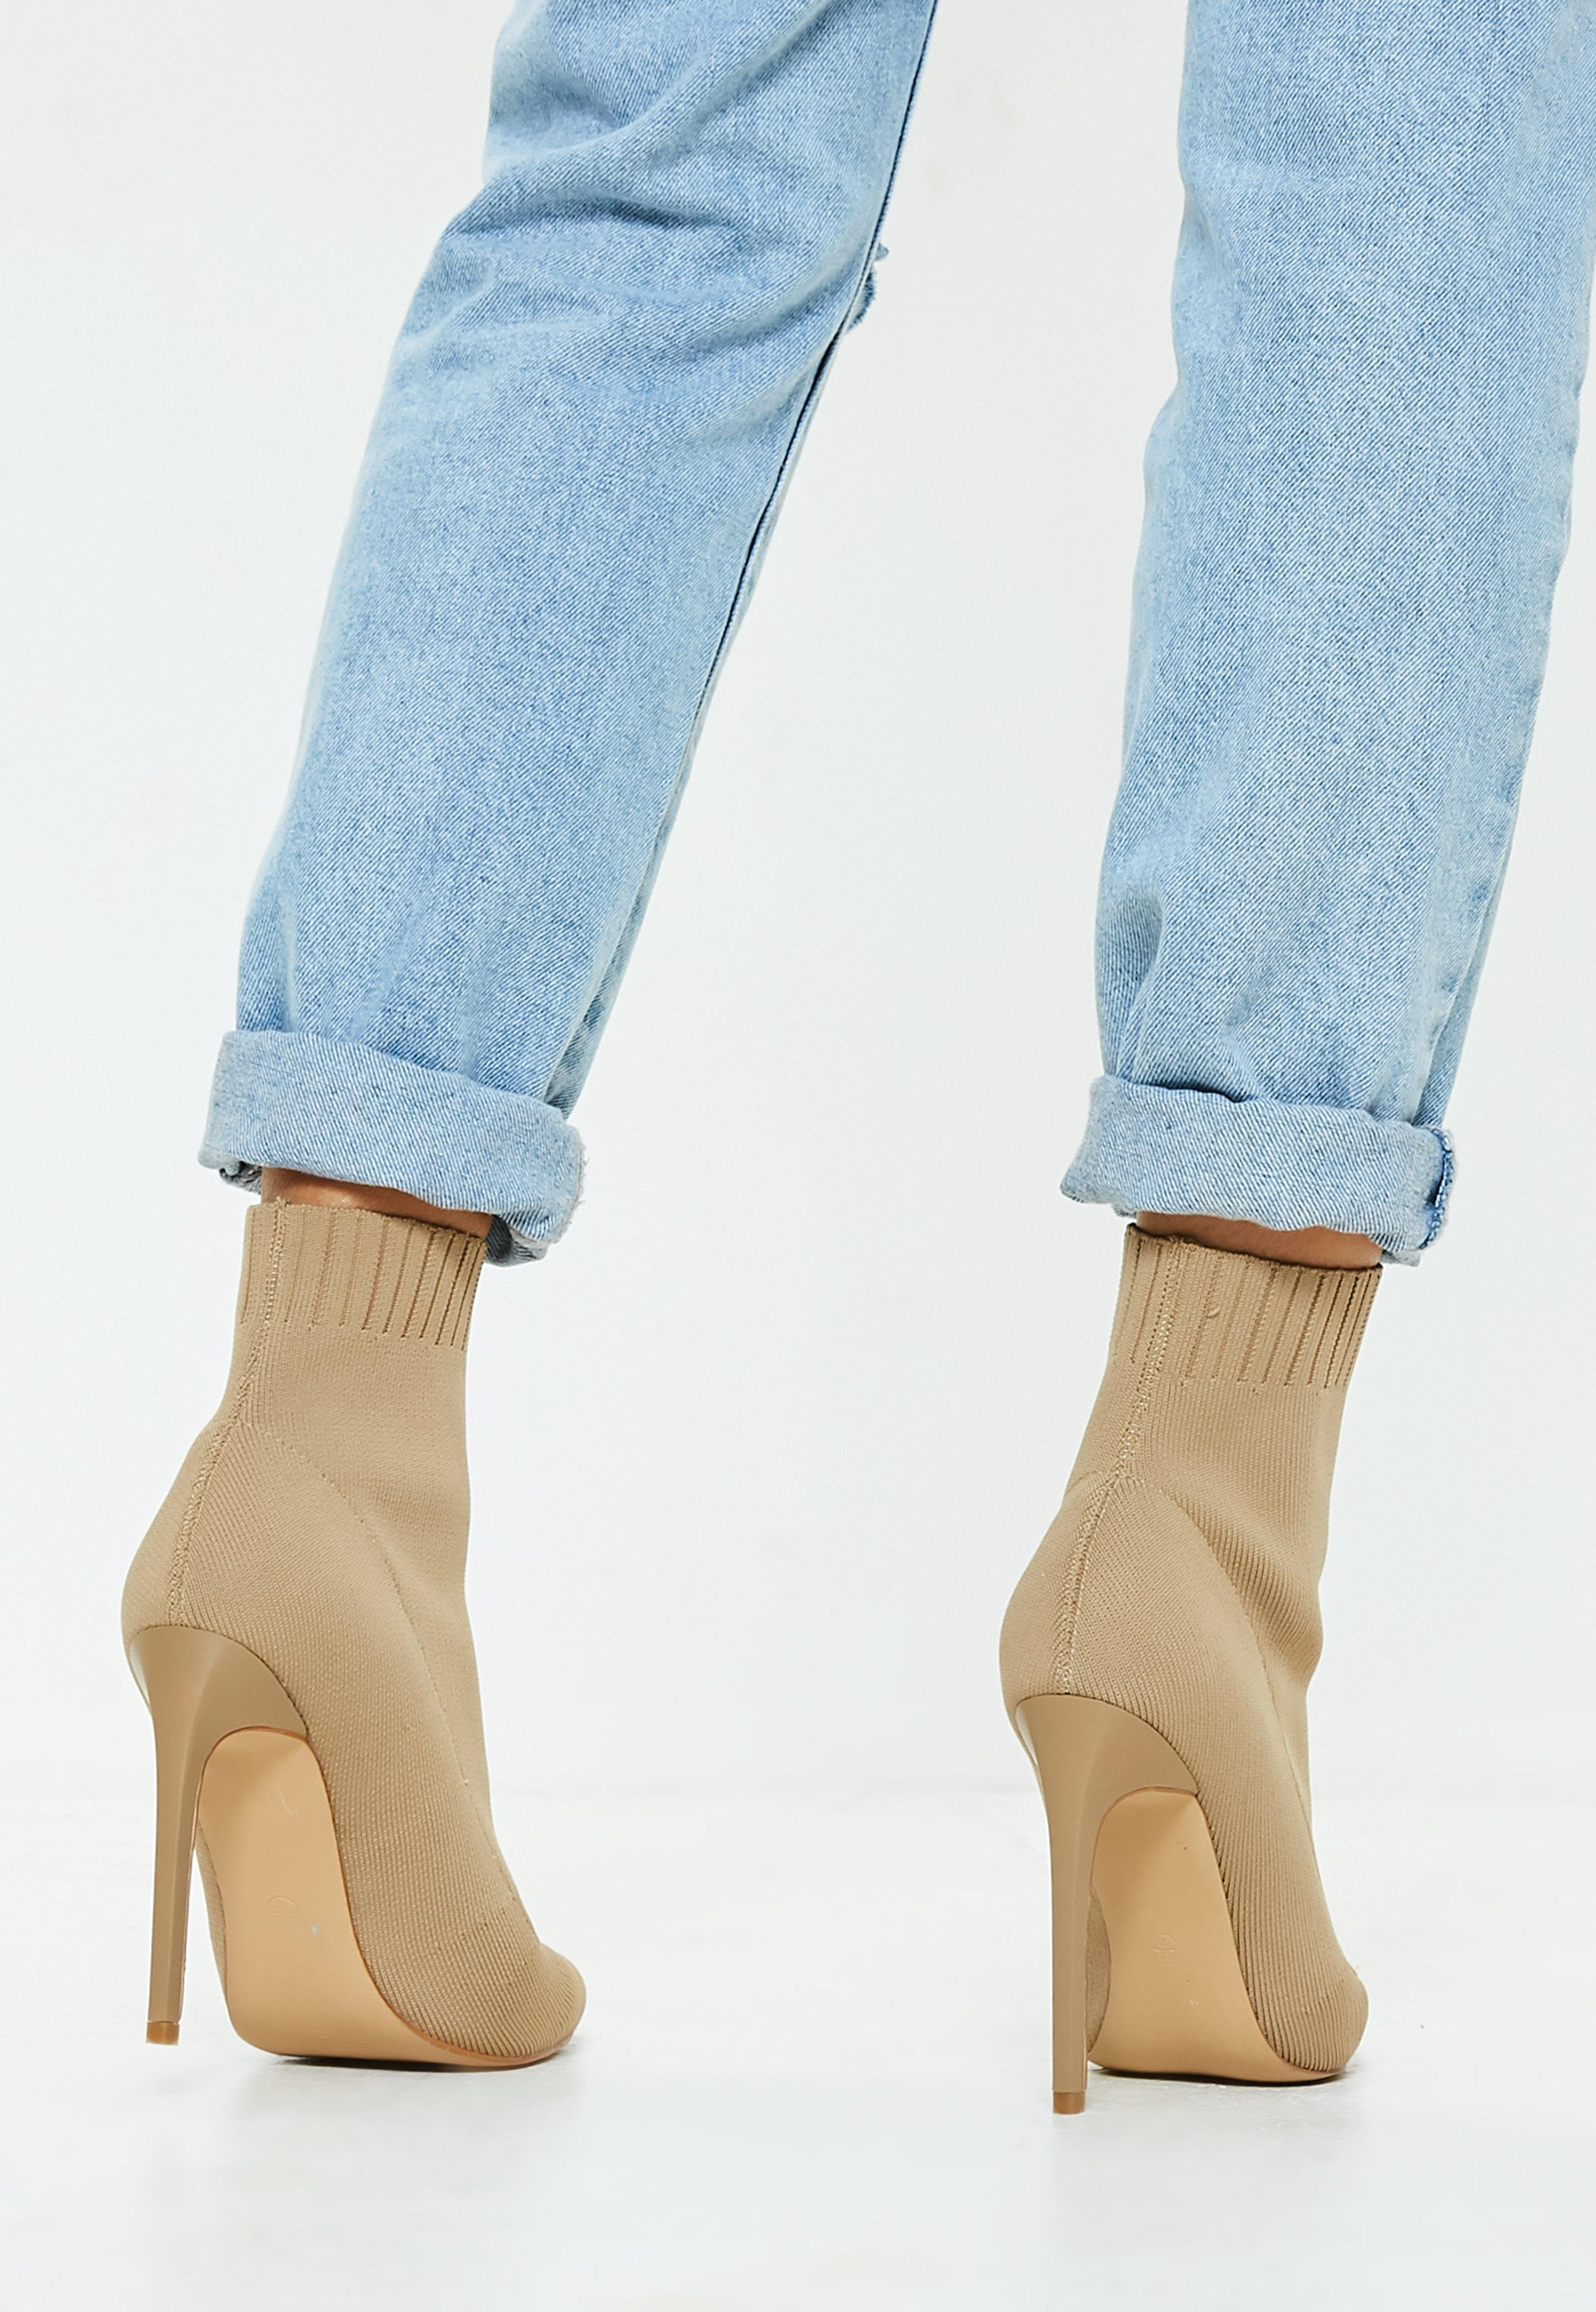 c1489679efd1 Lyst - Missguided Nude Knitted Pointed Toe Sock Ankle Boots in Blue